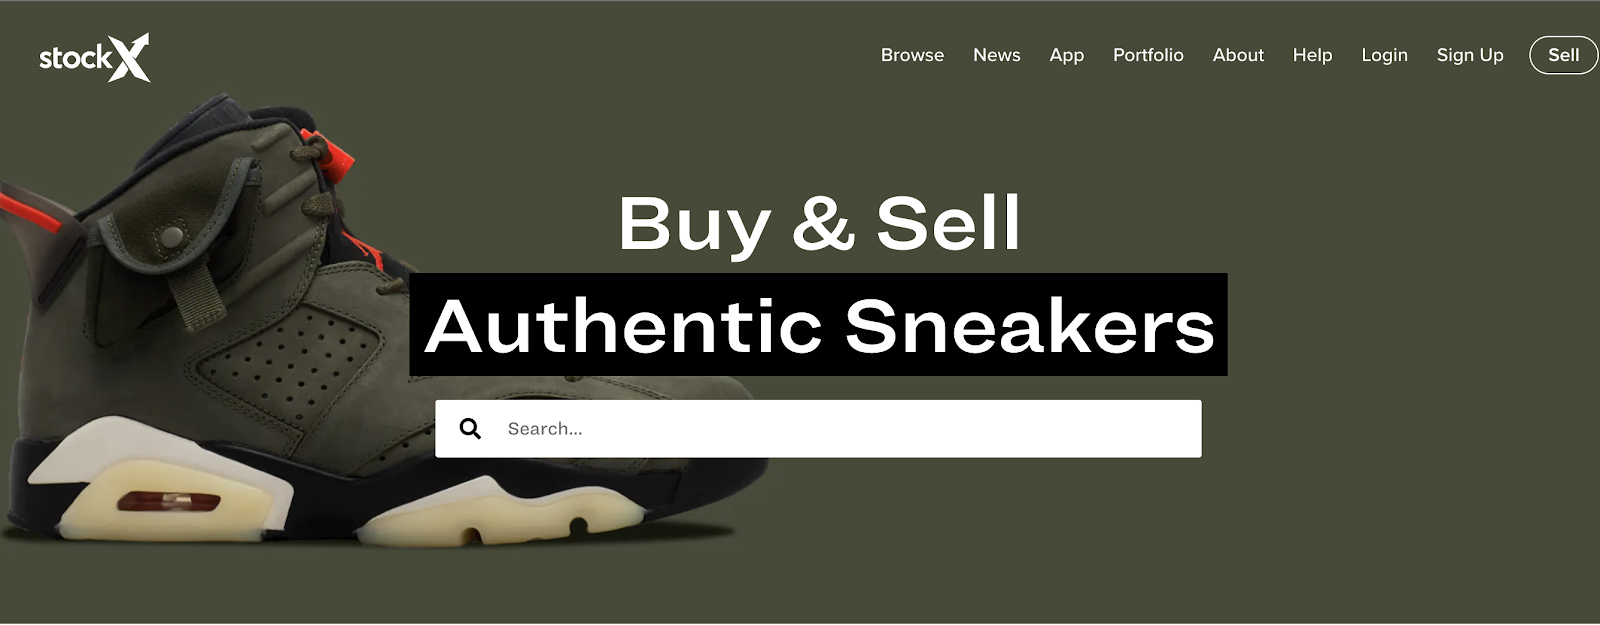 stockx ecommerce marketplace for shoes